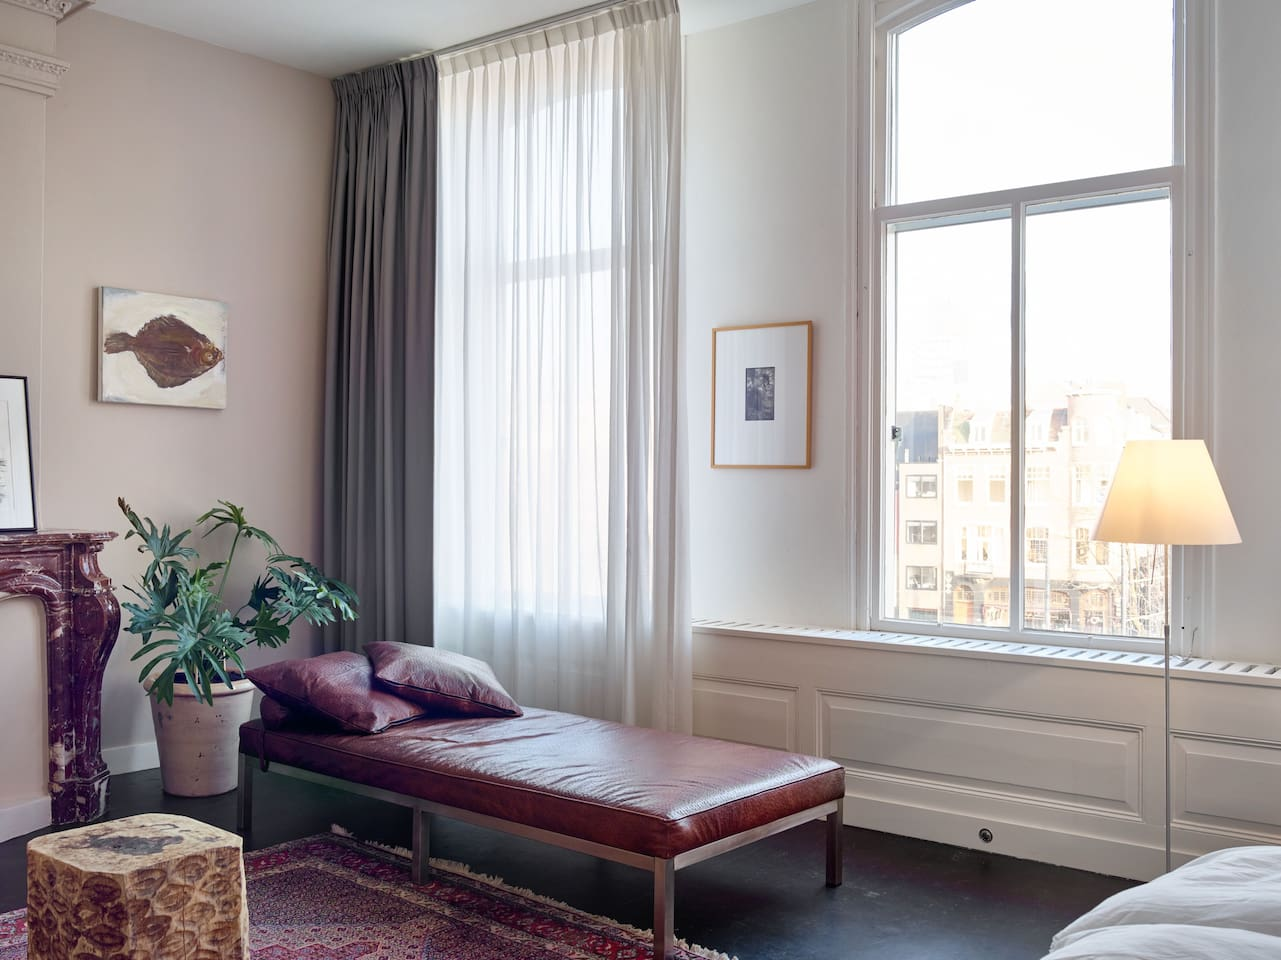 Your private spacious room in the citycentre